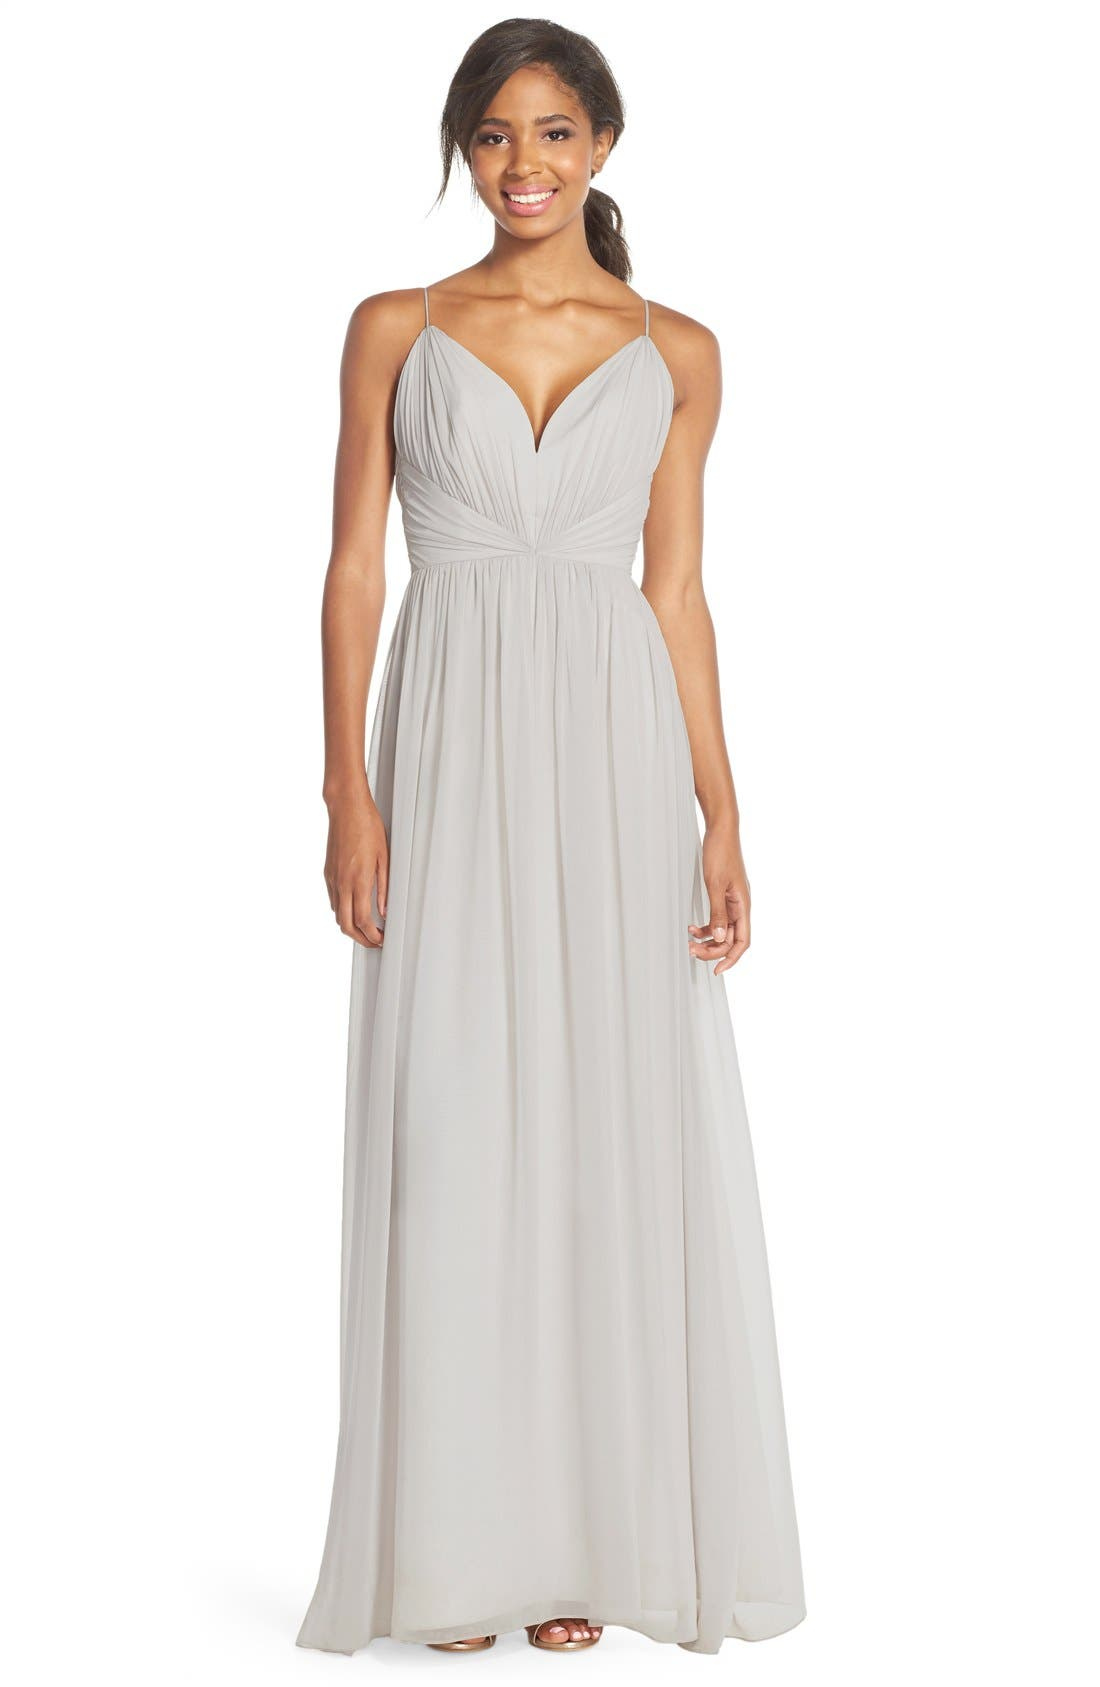 Jim hjelm occasions bridesmaid wedding party dresses nordstrom ombrellifo Choice Image